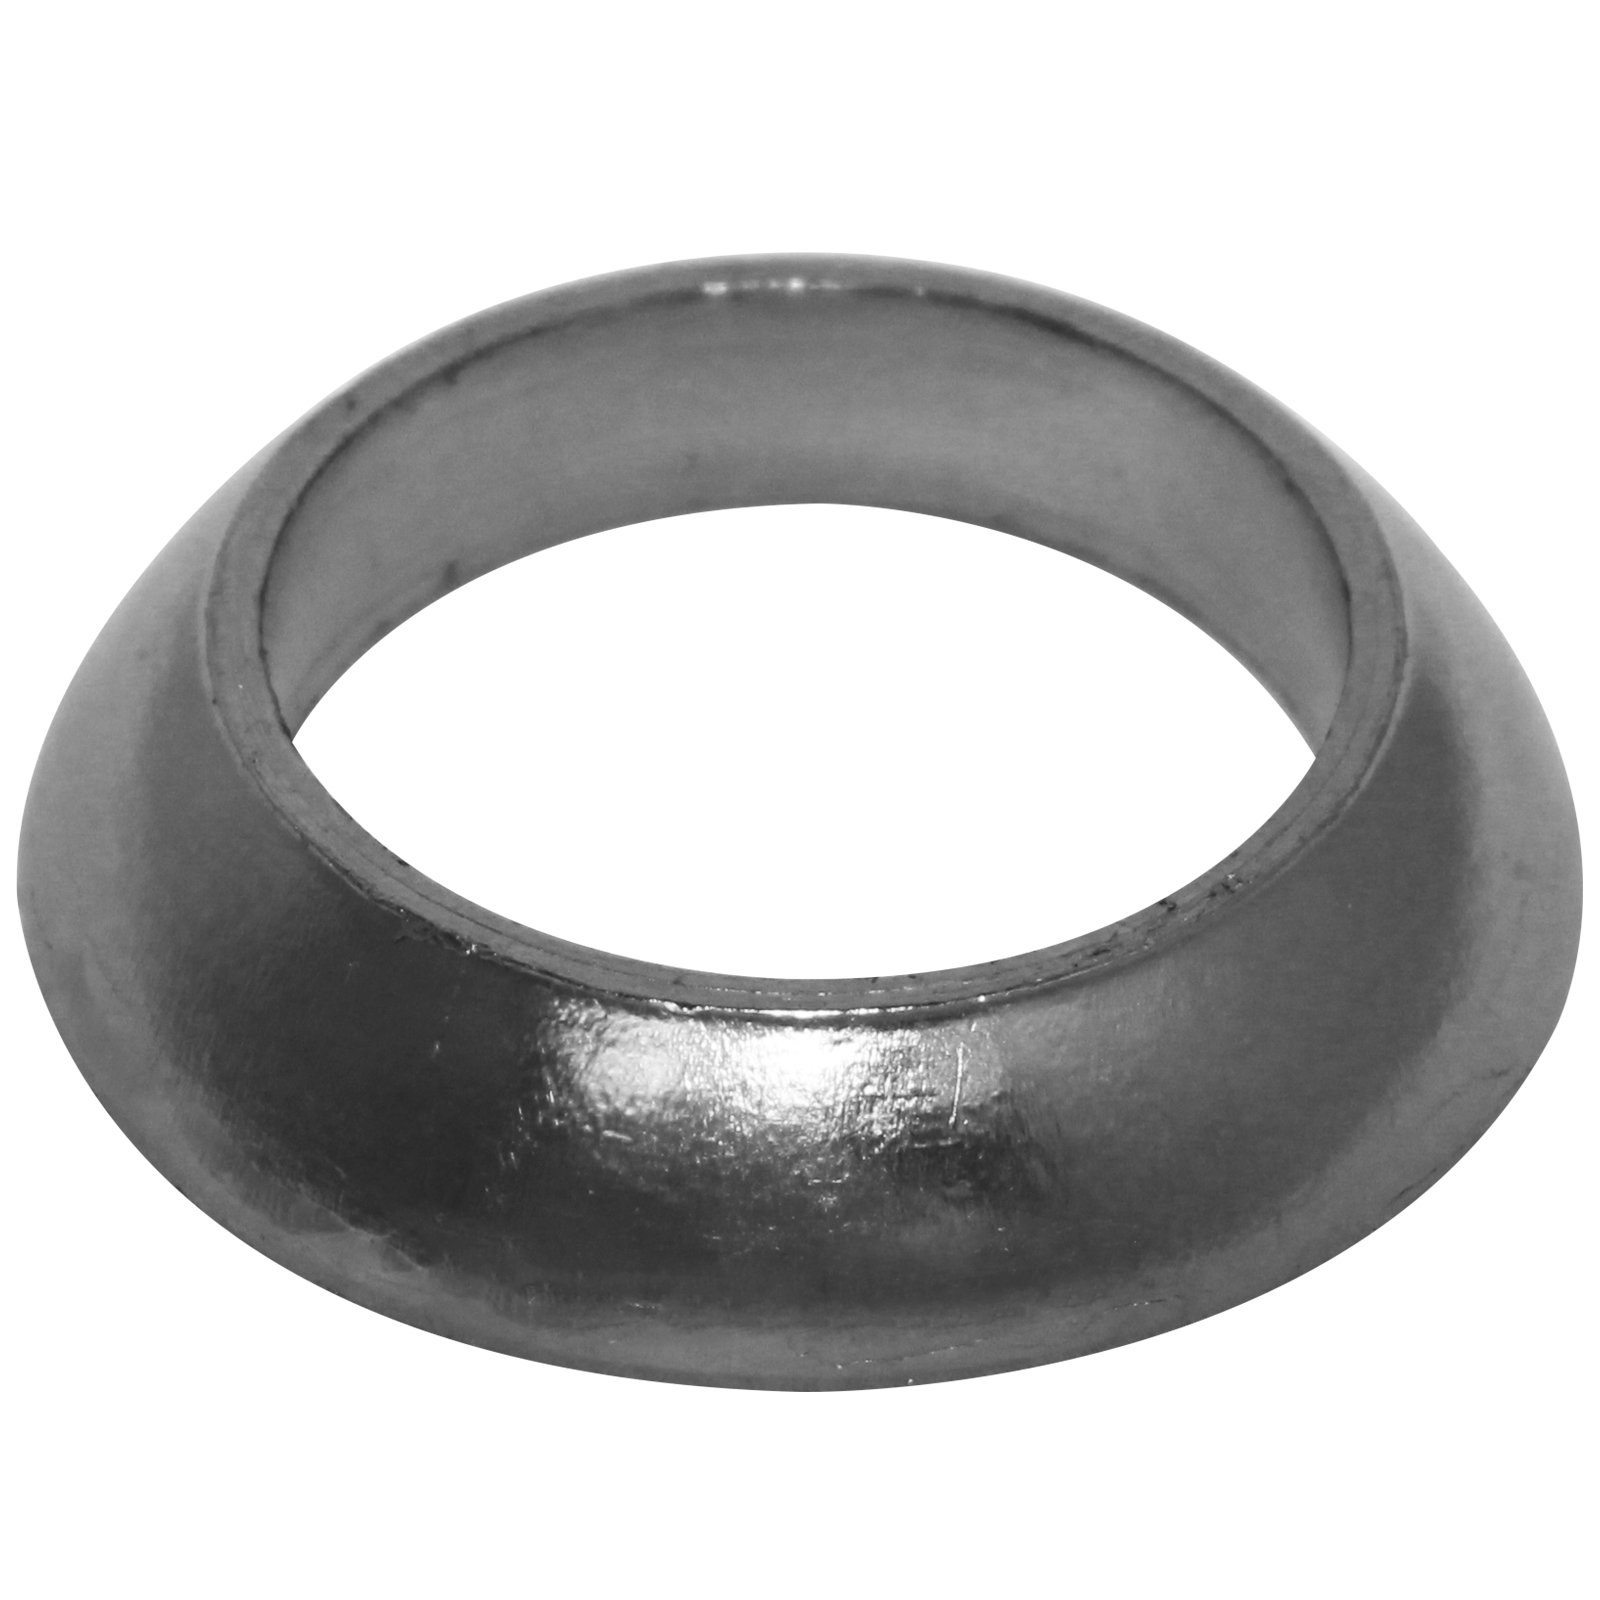 CALTRIC Exhaust Donut Gasket Seal Fits ARCTIC CAT 500 4X4 2004 2005